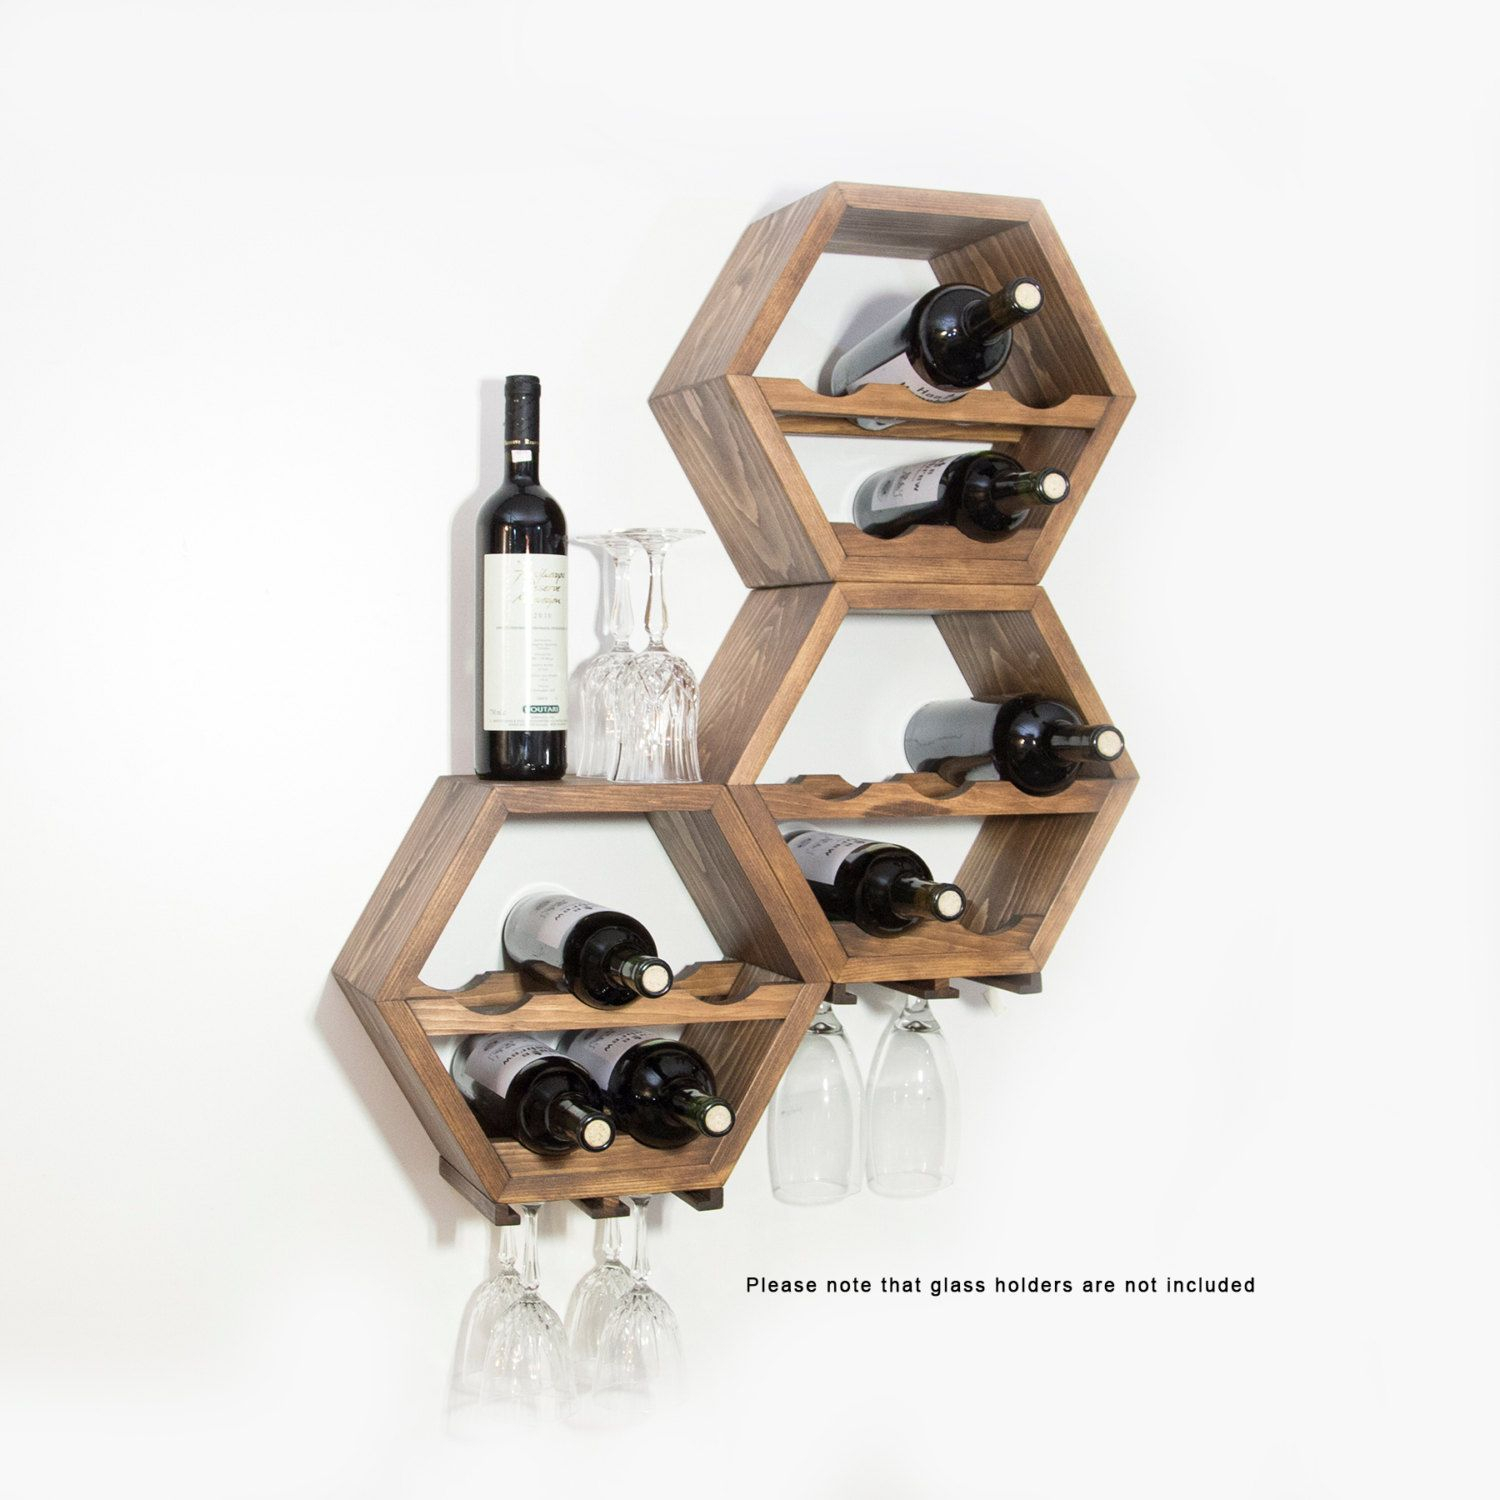 Honeycomb Wine Rack, Wall Wine Racks, Wine Storage, Hexagon Intended For Three Glass Holder Wall Decor (View 5 of 30)